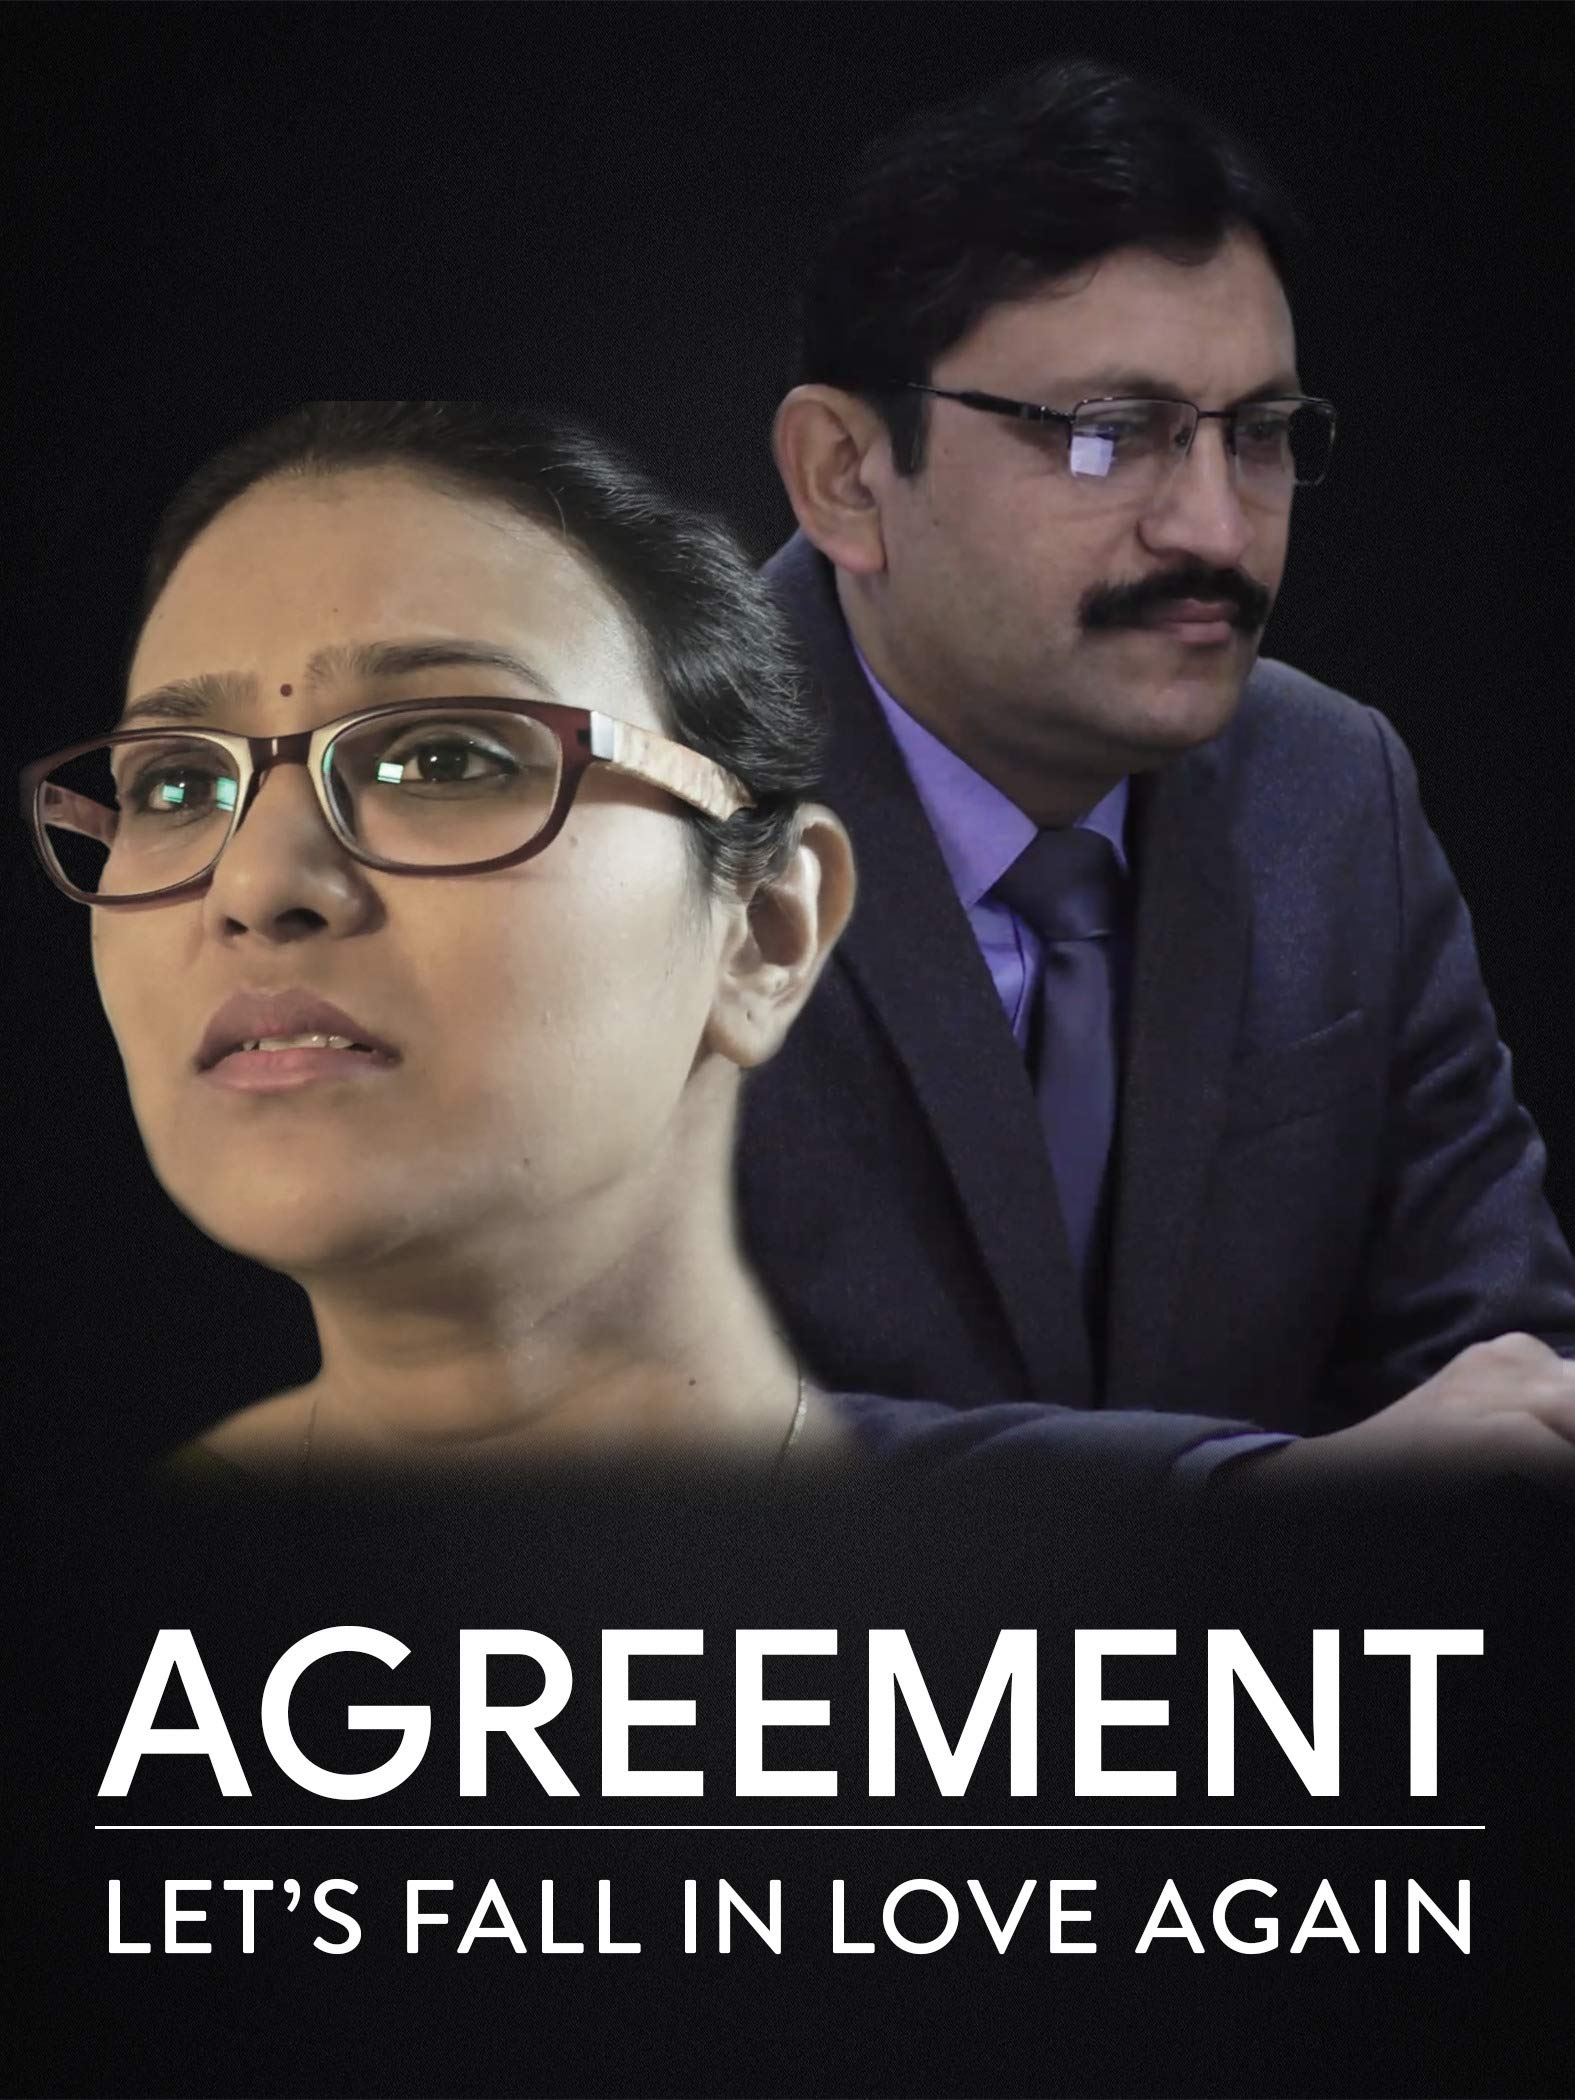 Agreement-Let's Fall in Love Again